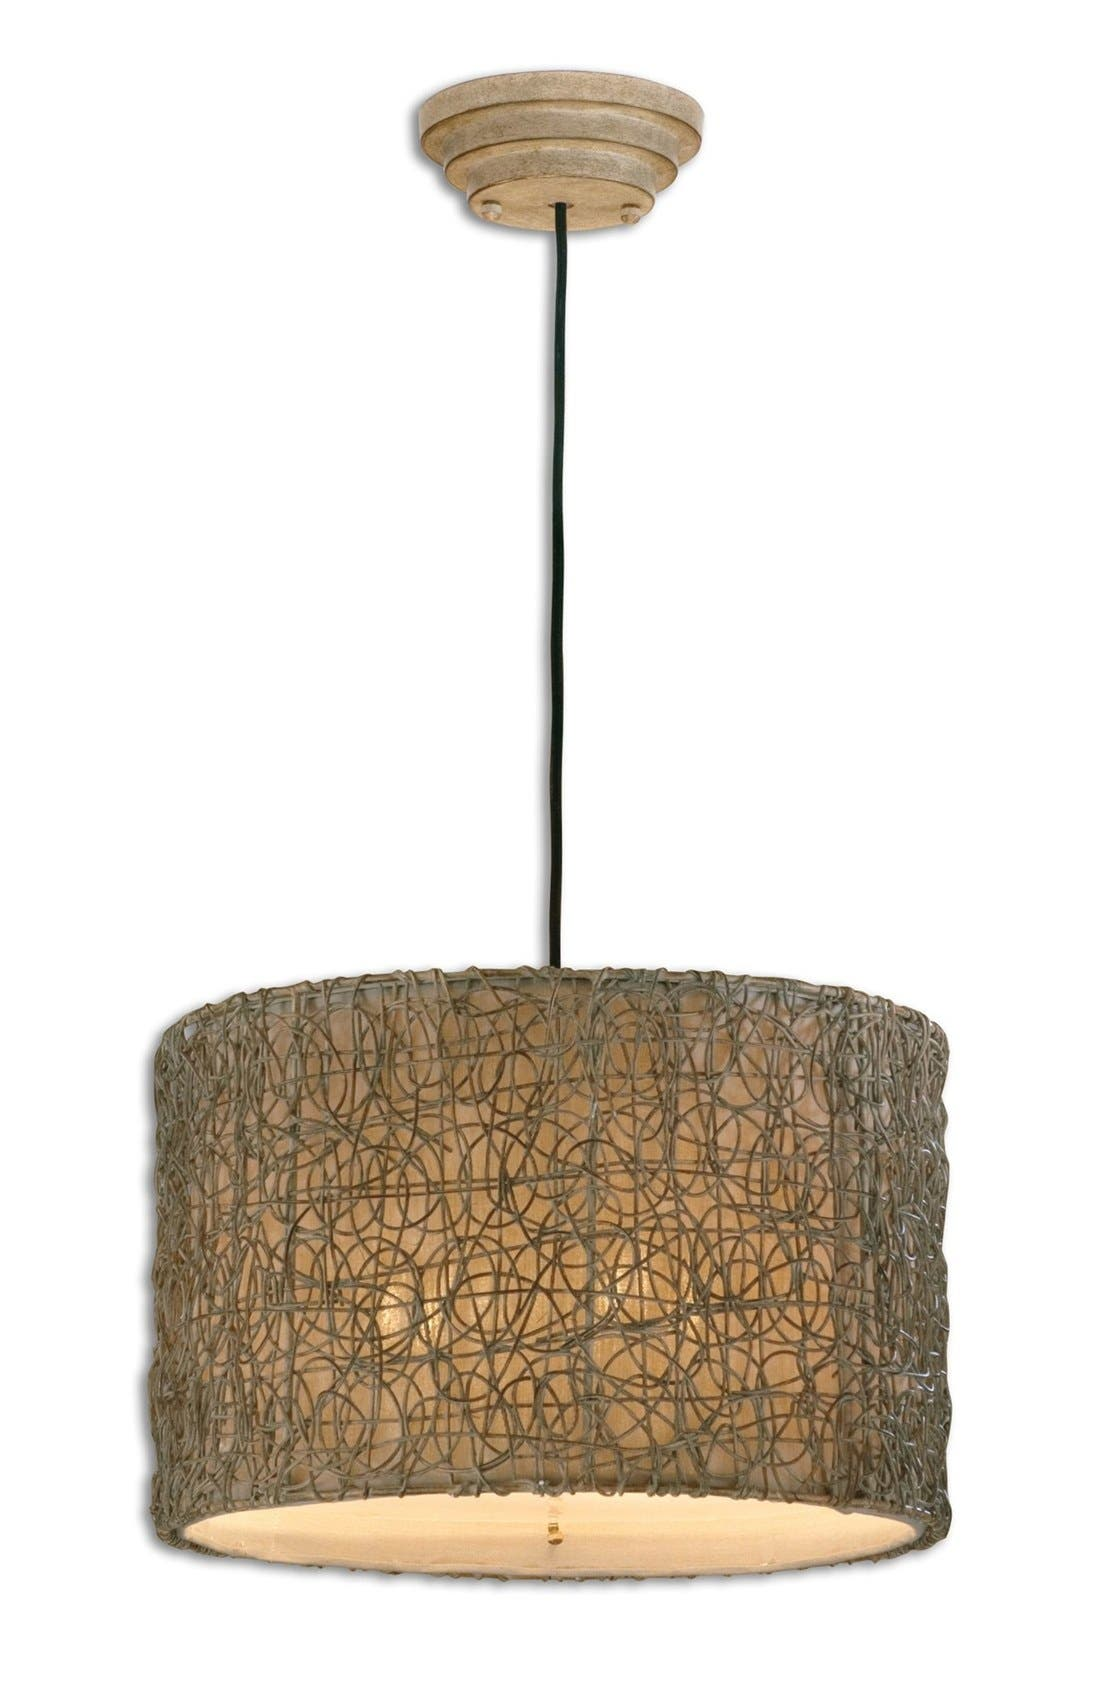 Knotted Rattan Pendant Light,                         Main,                         color,